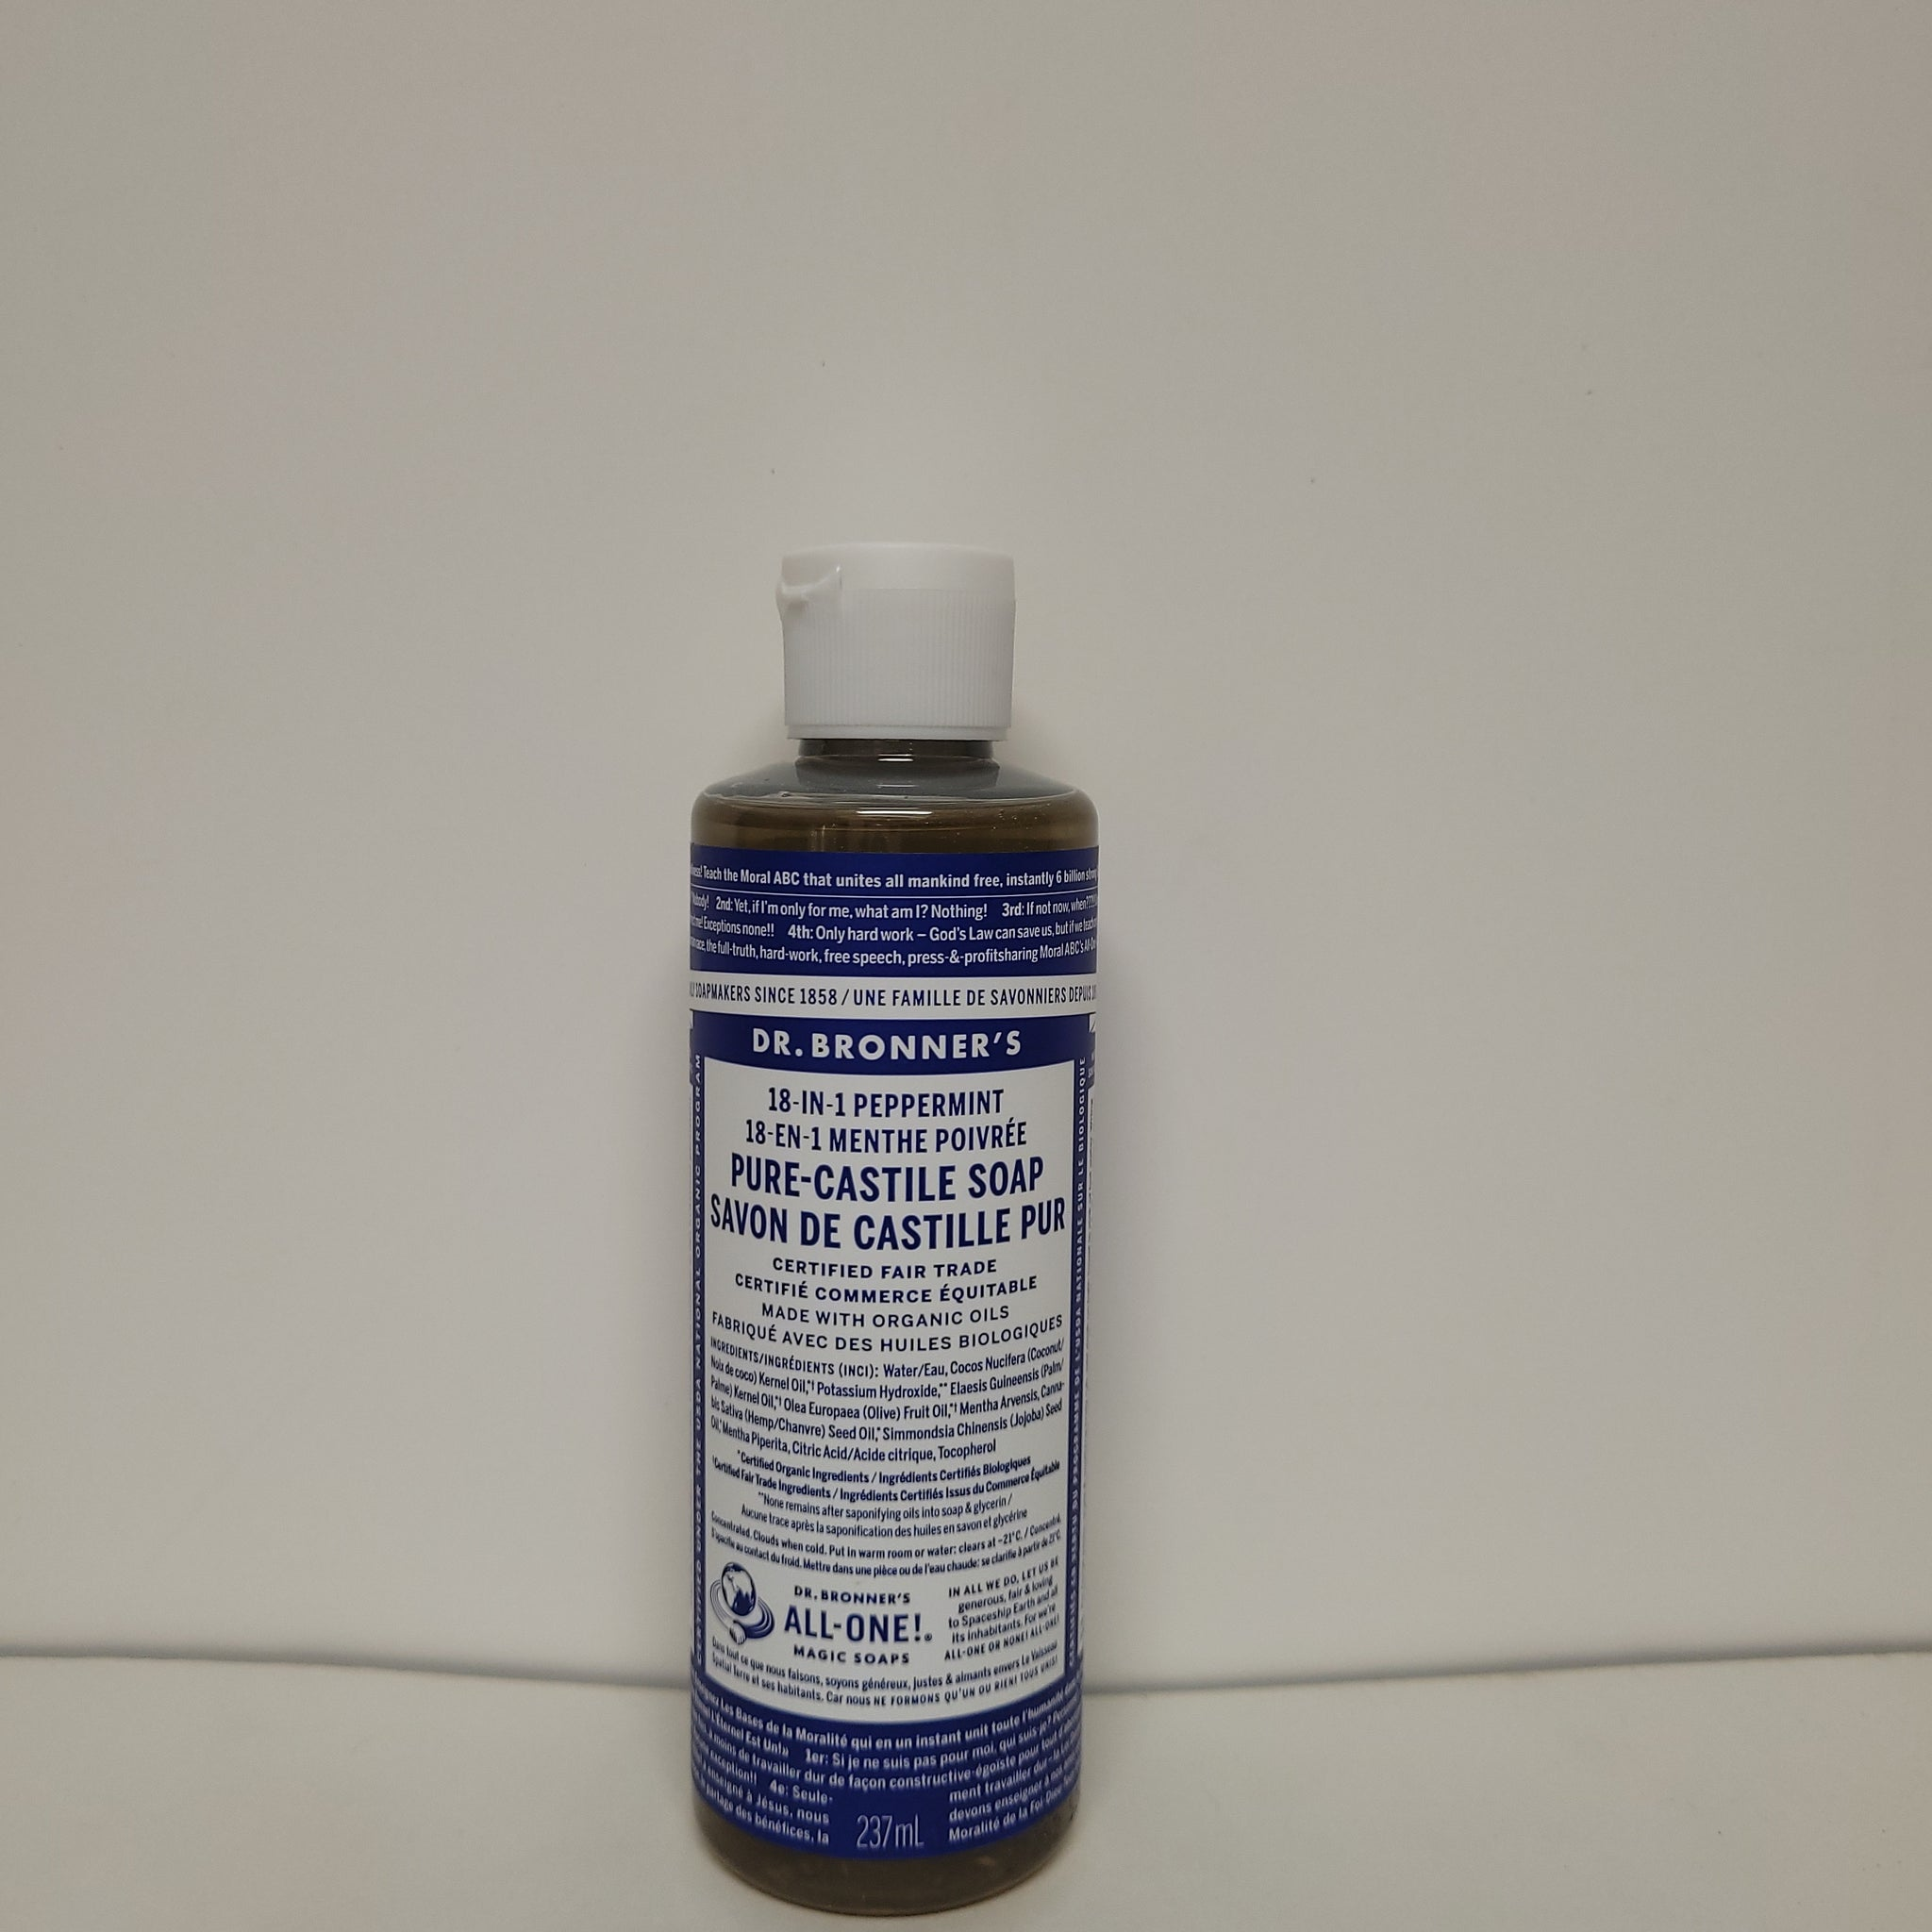 Dr. Bronner's 18 in 1 Peppermint Pure Castile Soap